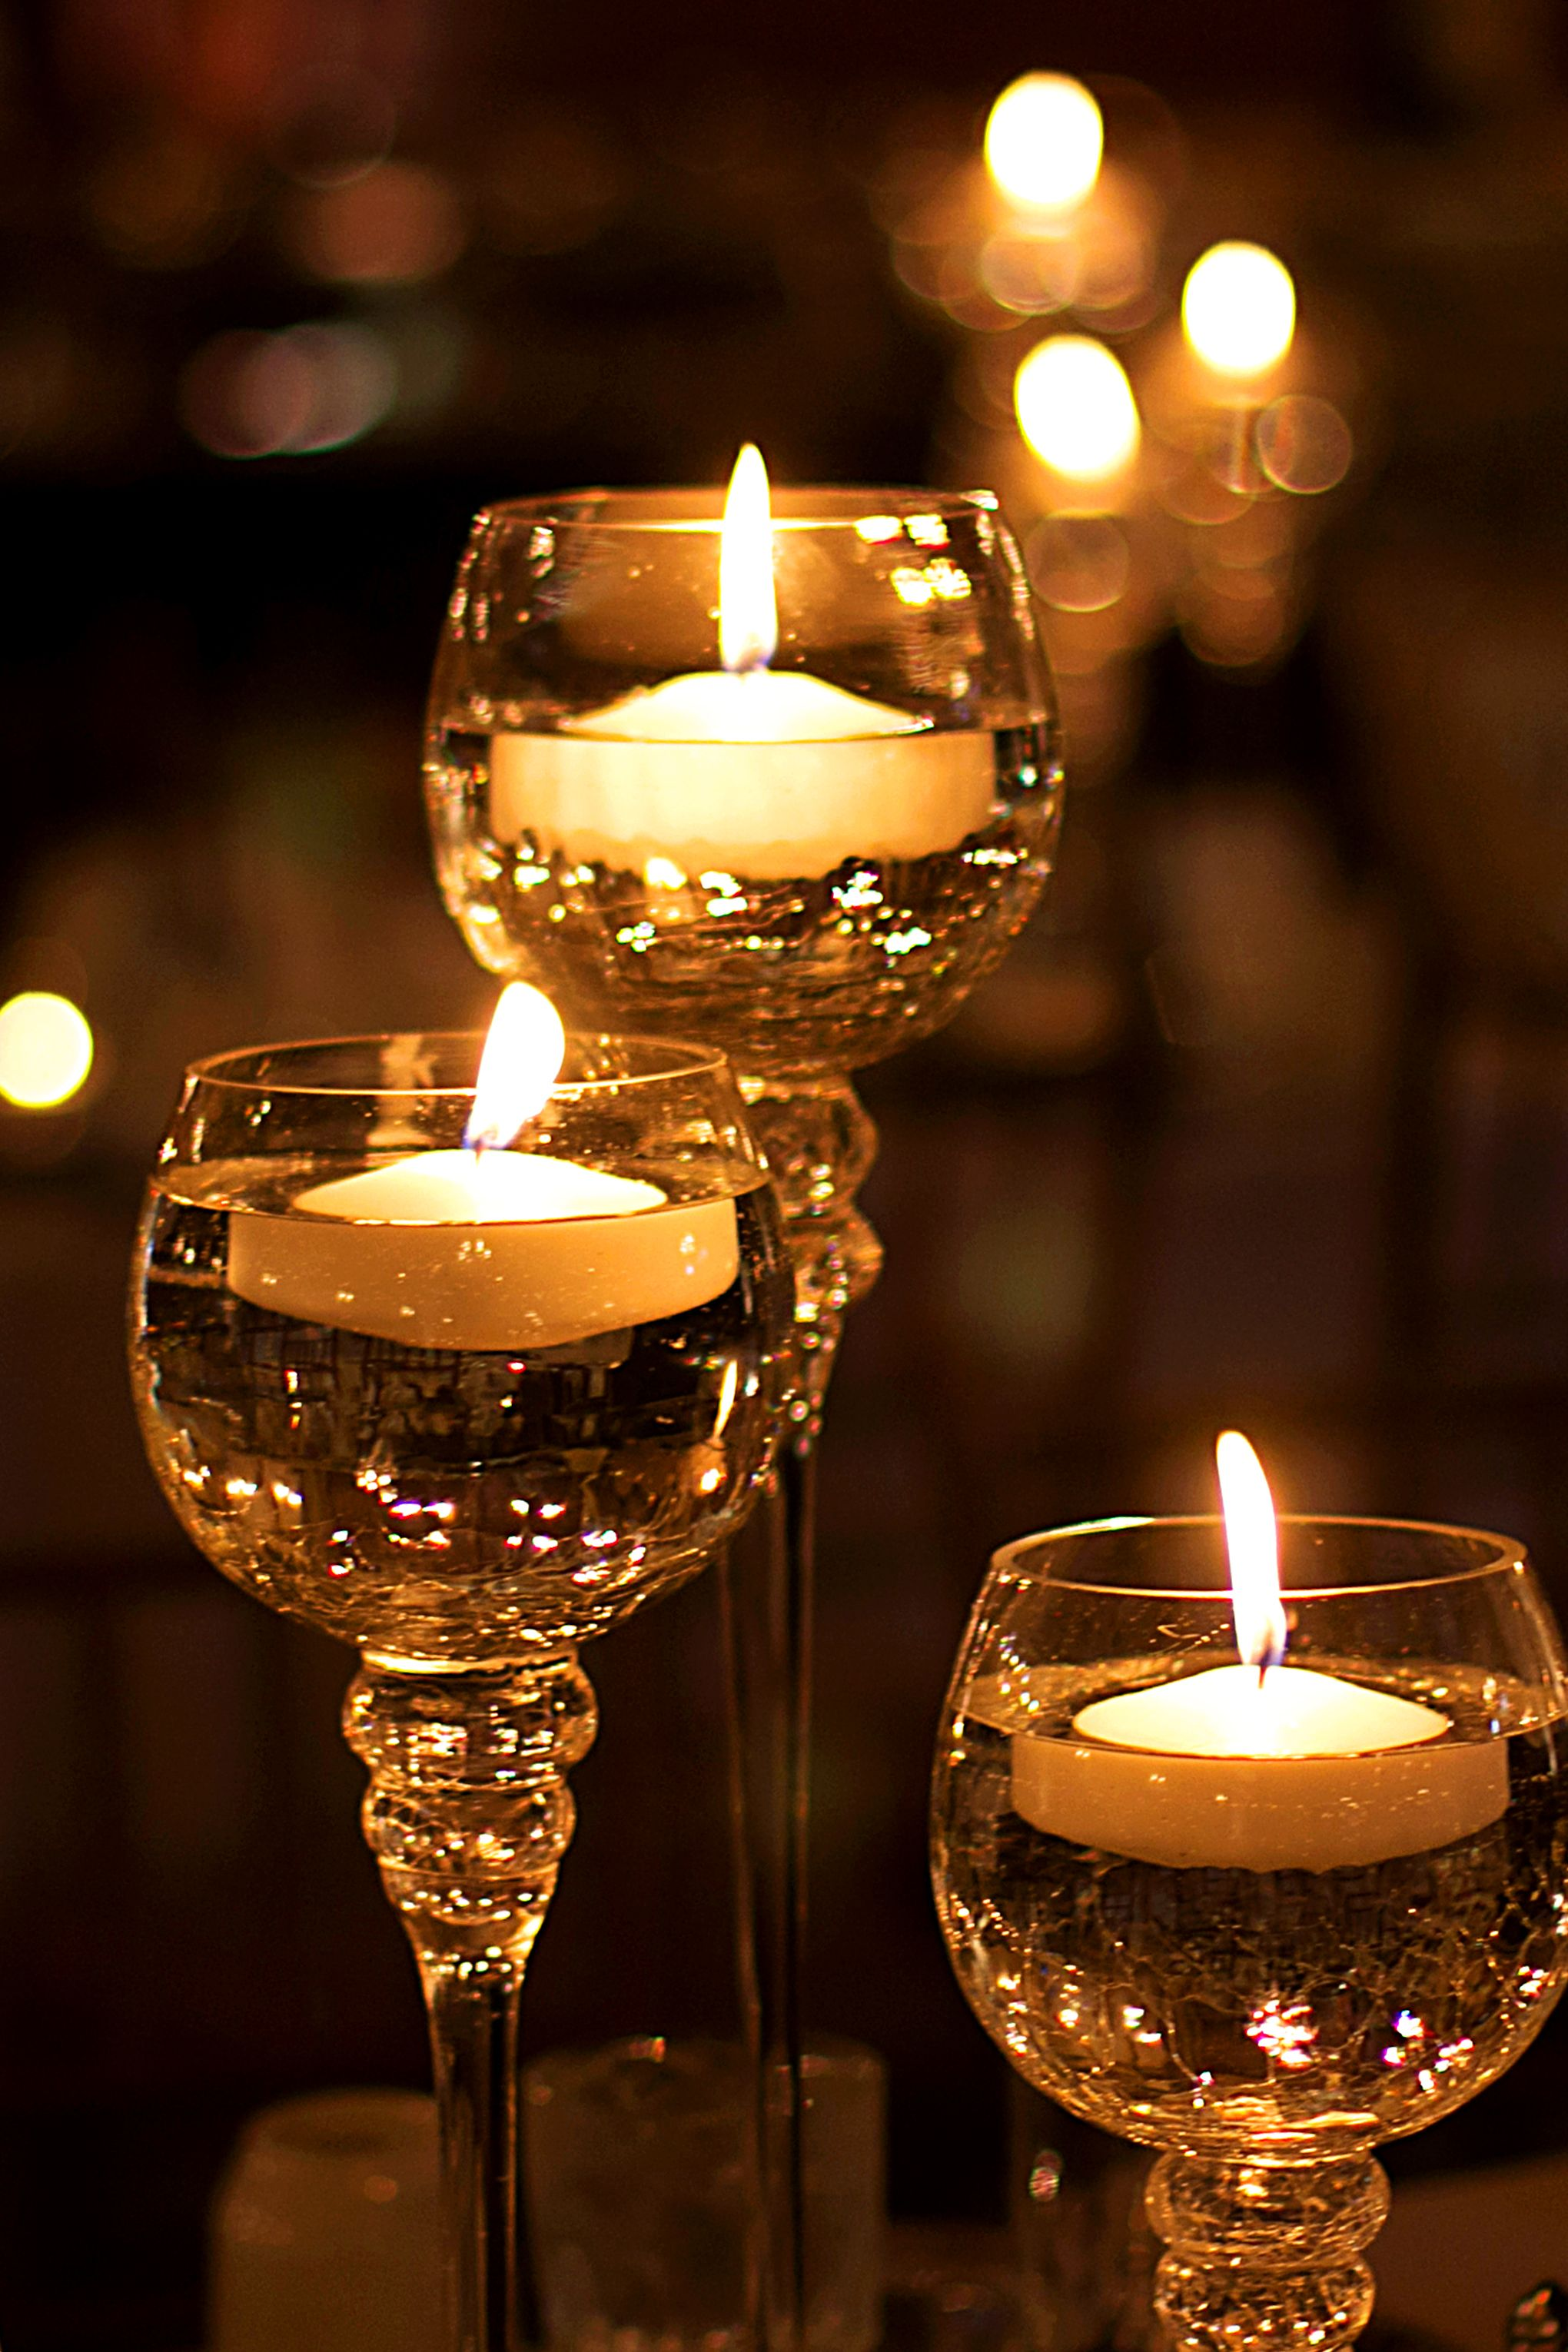 Candle light dinner table for two - Floating Candle Centerpiece Www Tablescapesbydesign Com Https Www Facebook